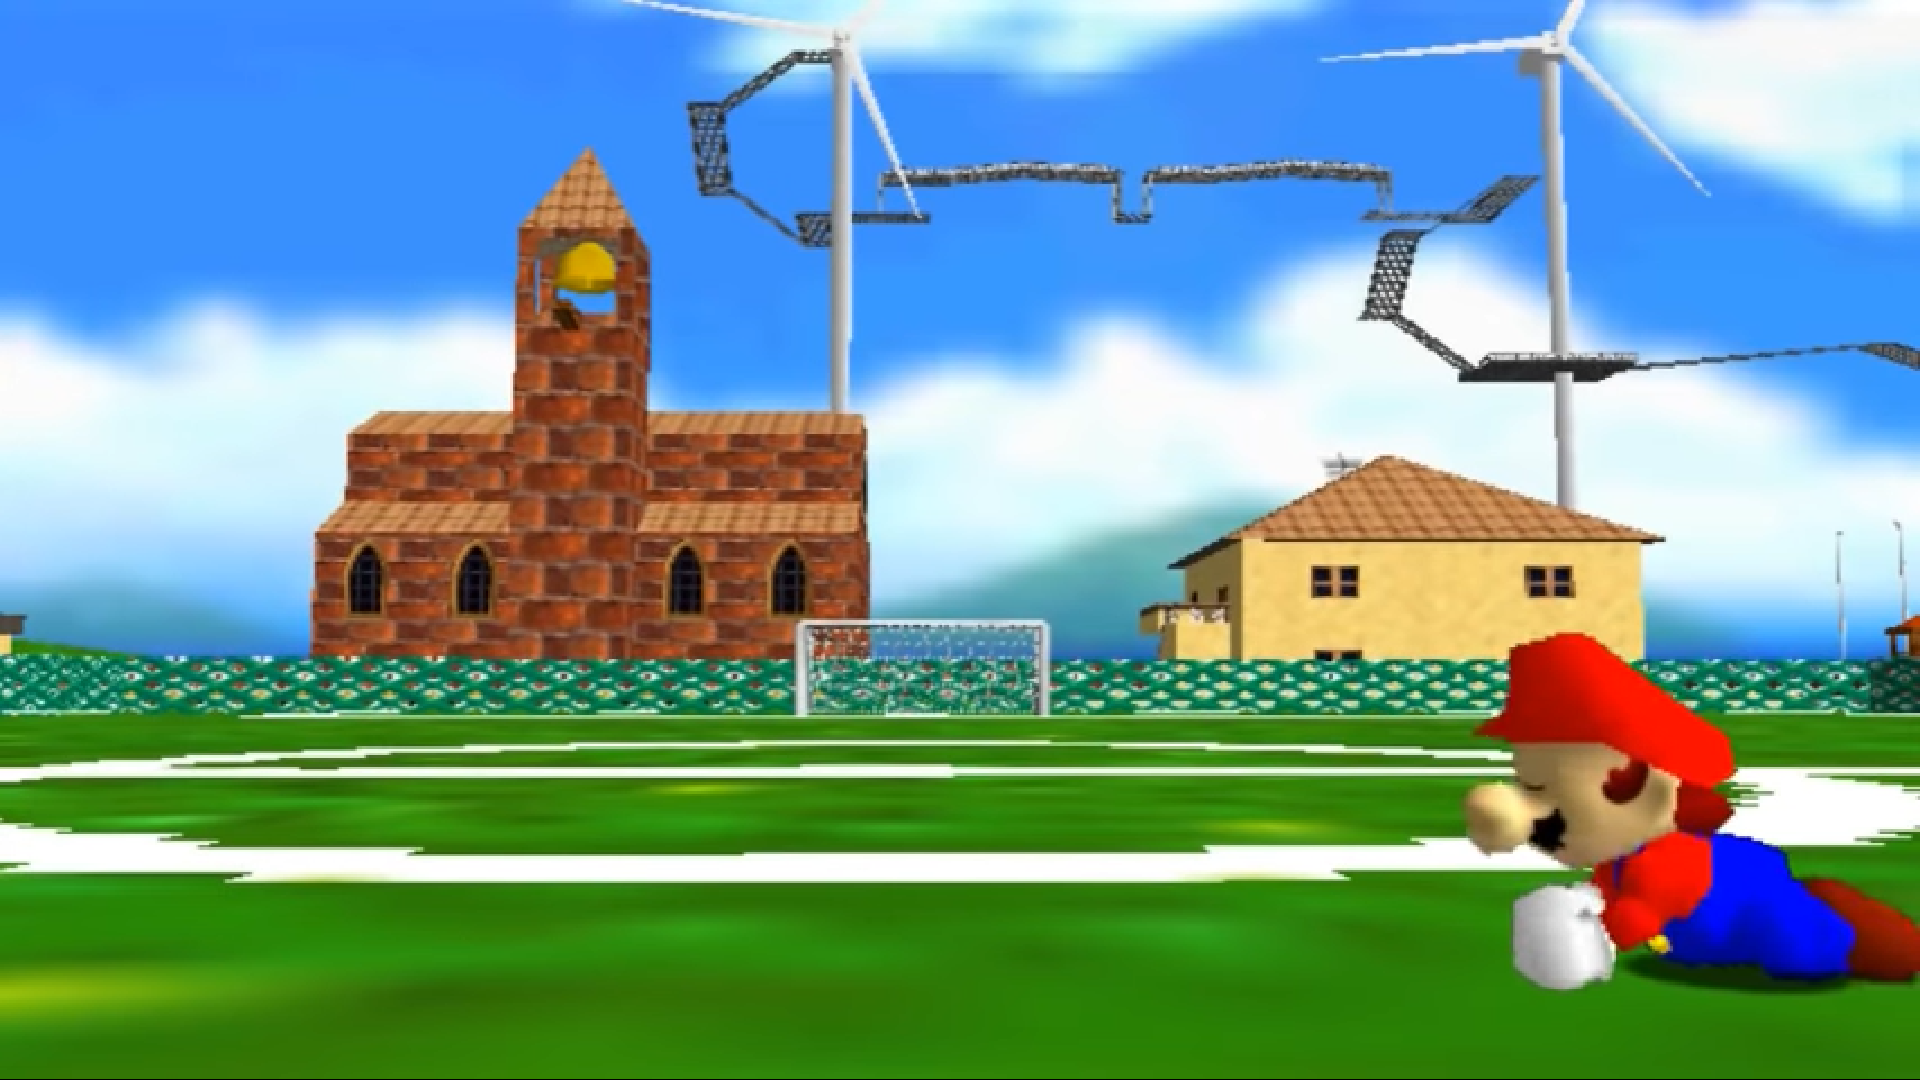 Smexy Town soccer field